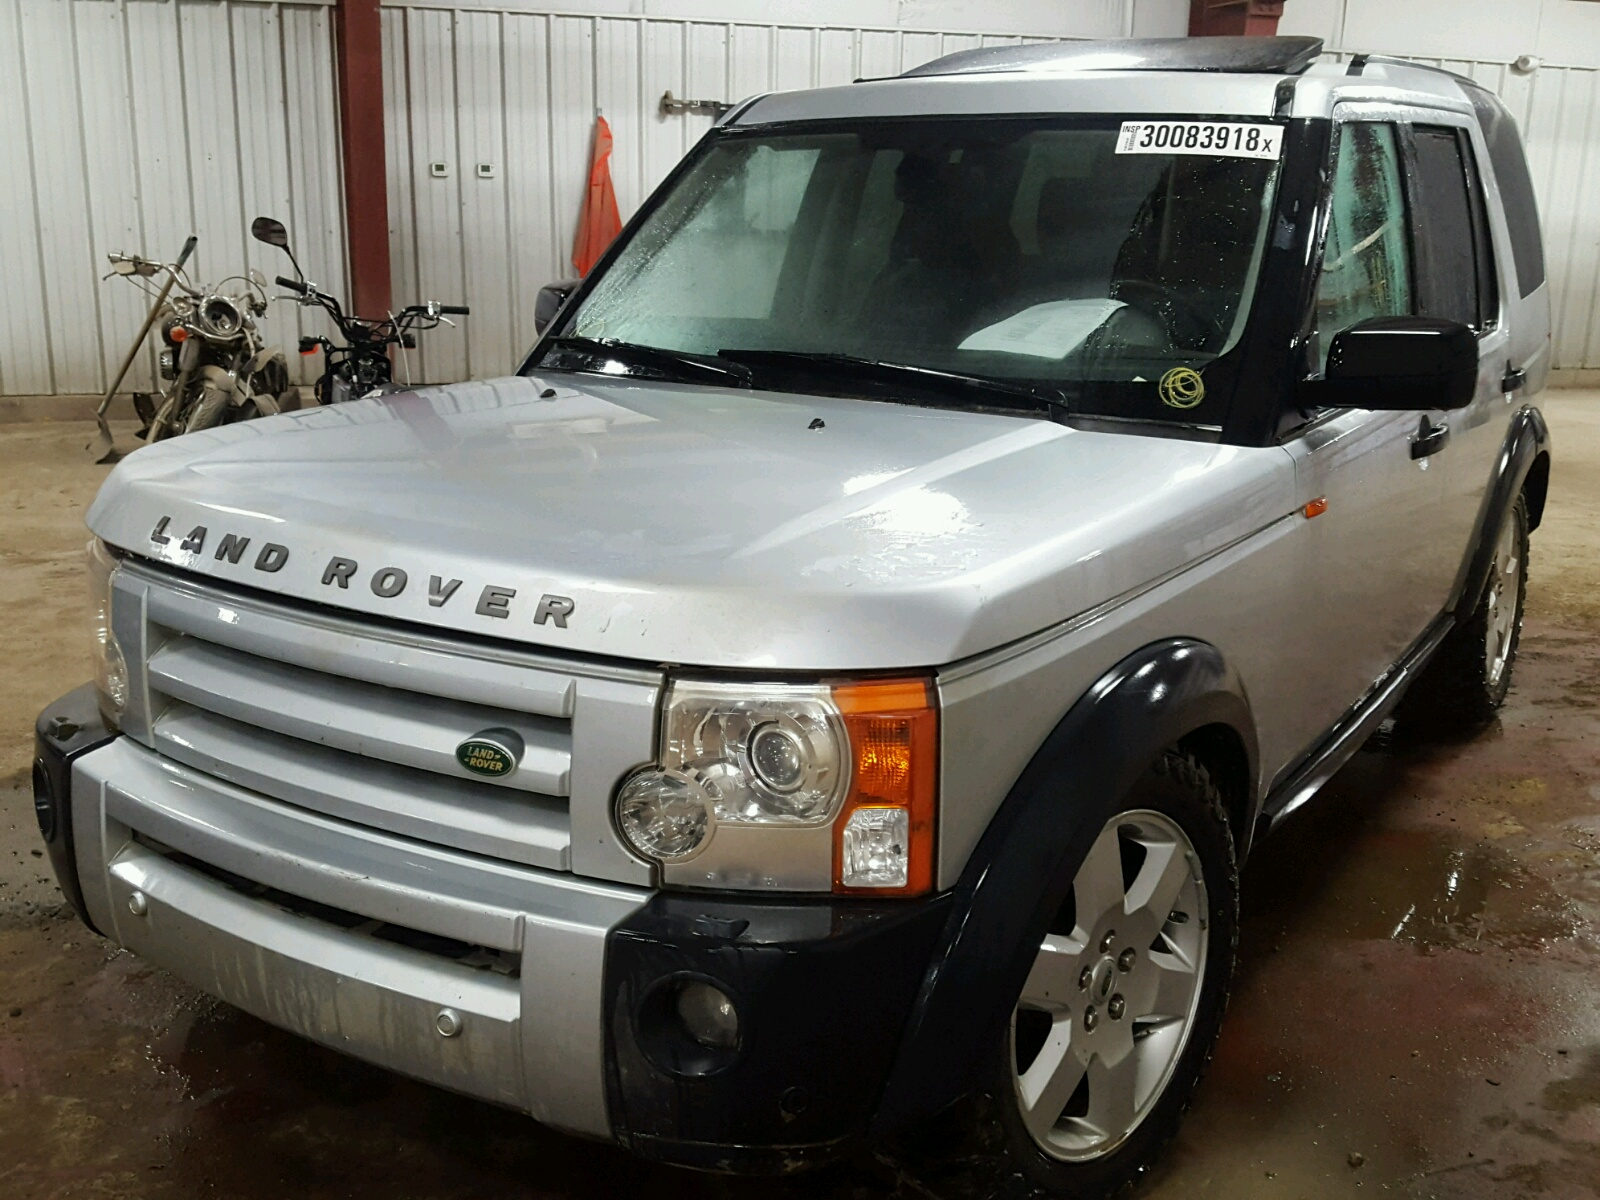 for carfinder landrover right lot coll se black north reconstrctd land ma sale on online cert of rover en boston auto title auctions view copart in